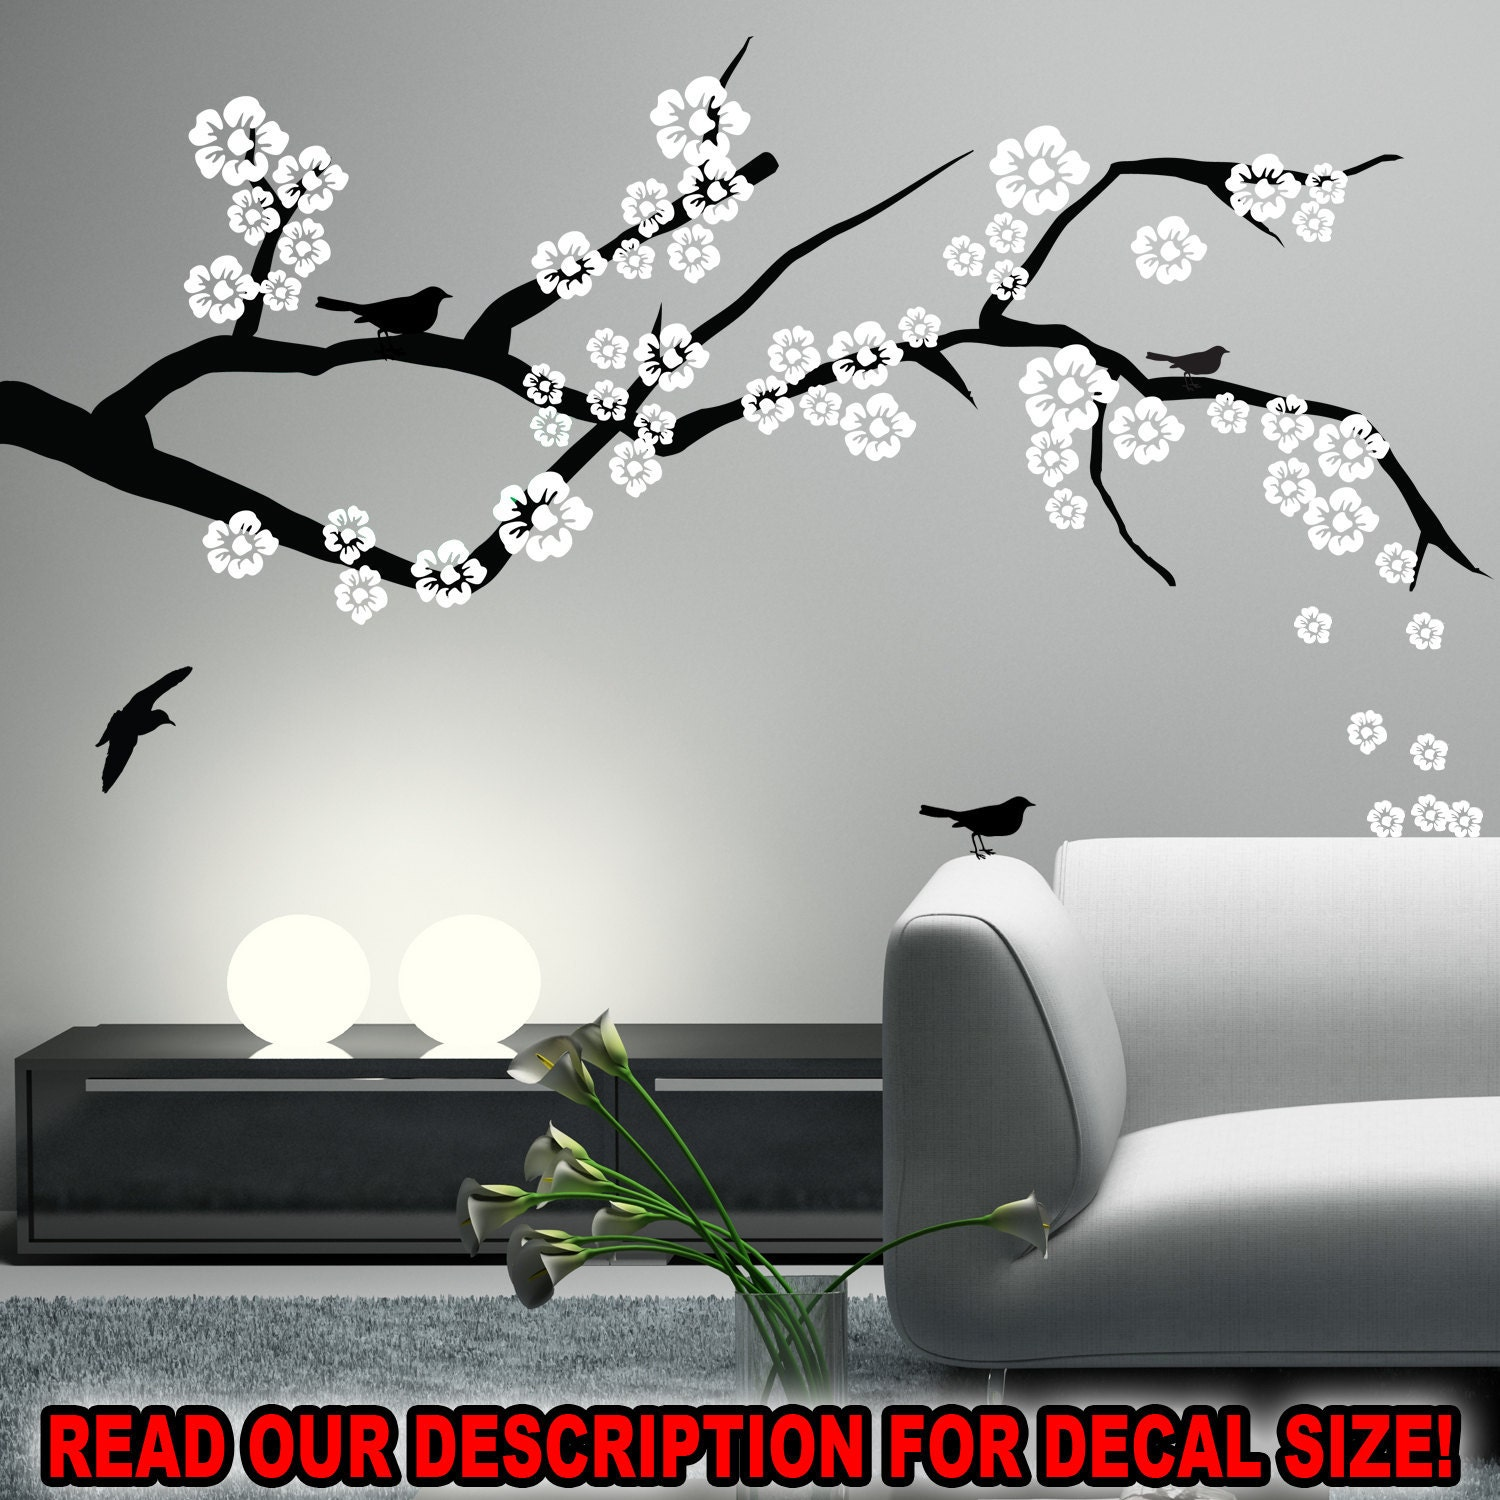 Wall decor stickers cherry blossoms : Cherry blossom branch wall decal nursery living by happywallz